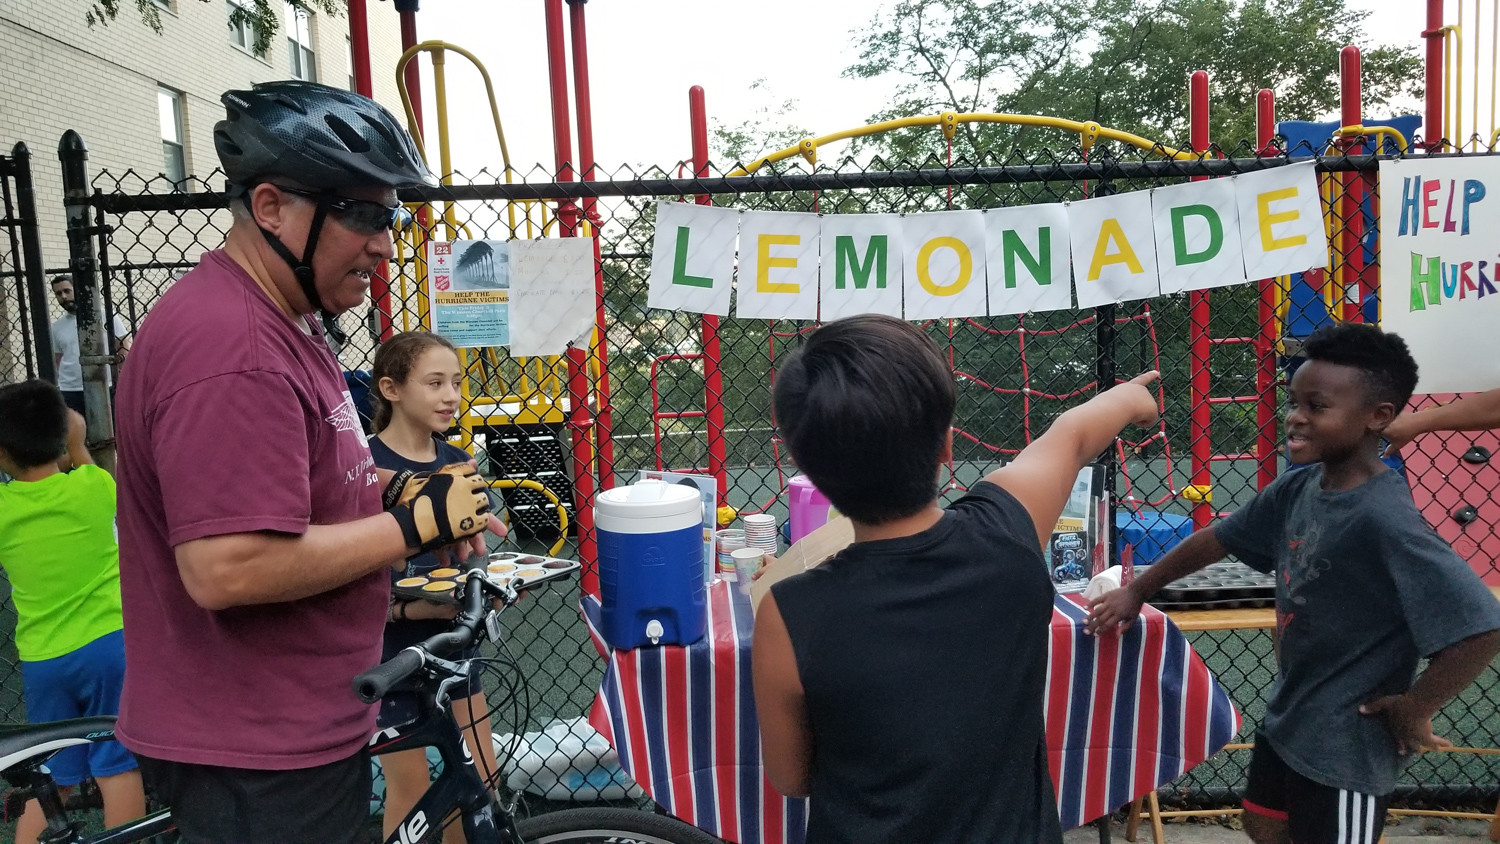 The money earned from the lemonade stand go toward relief efforts in Puerto Rico in the aftermath of the destruction caused by Hurricane Maria, says Ivan Alexander Laca Jara, co-founder of the stand. He asked his mother to make the lemonade using her 'secret' recipe, he says.